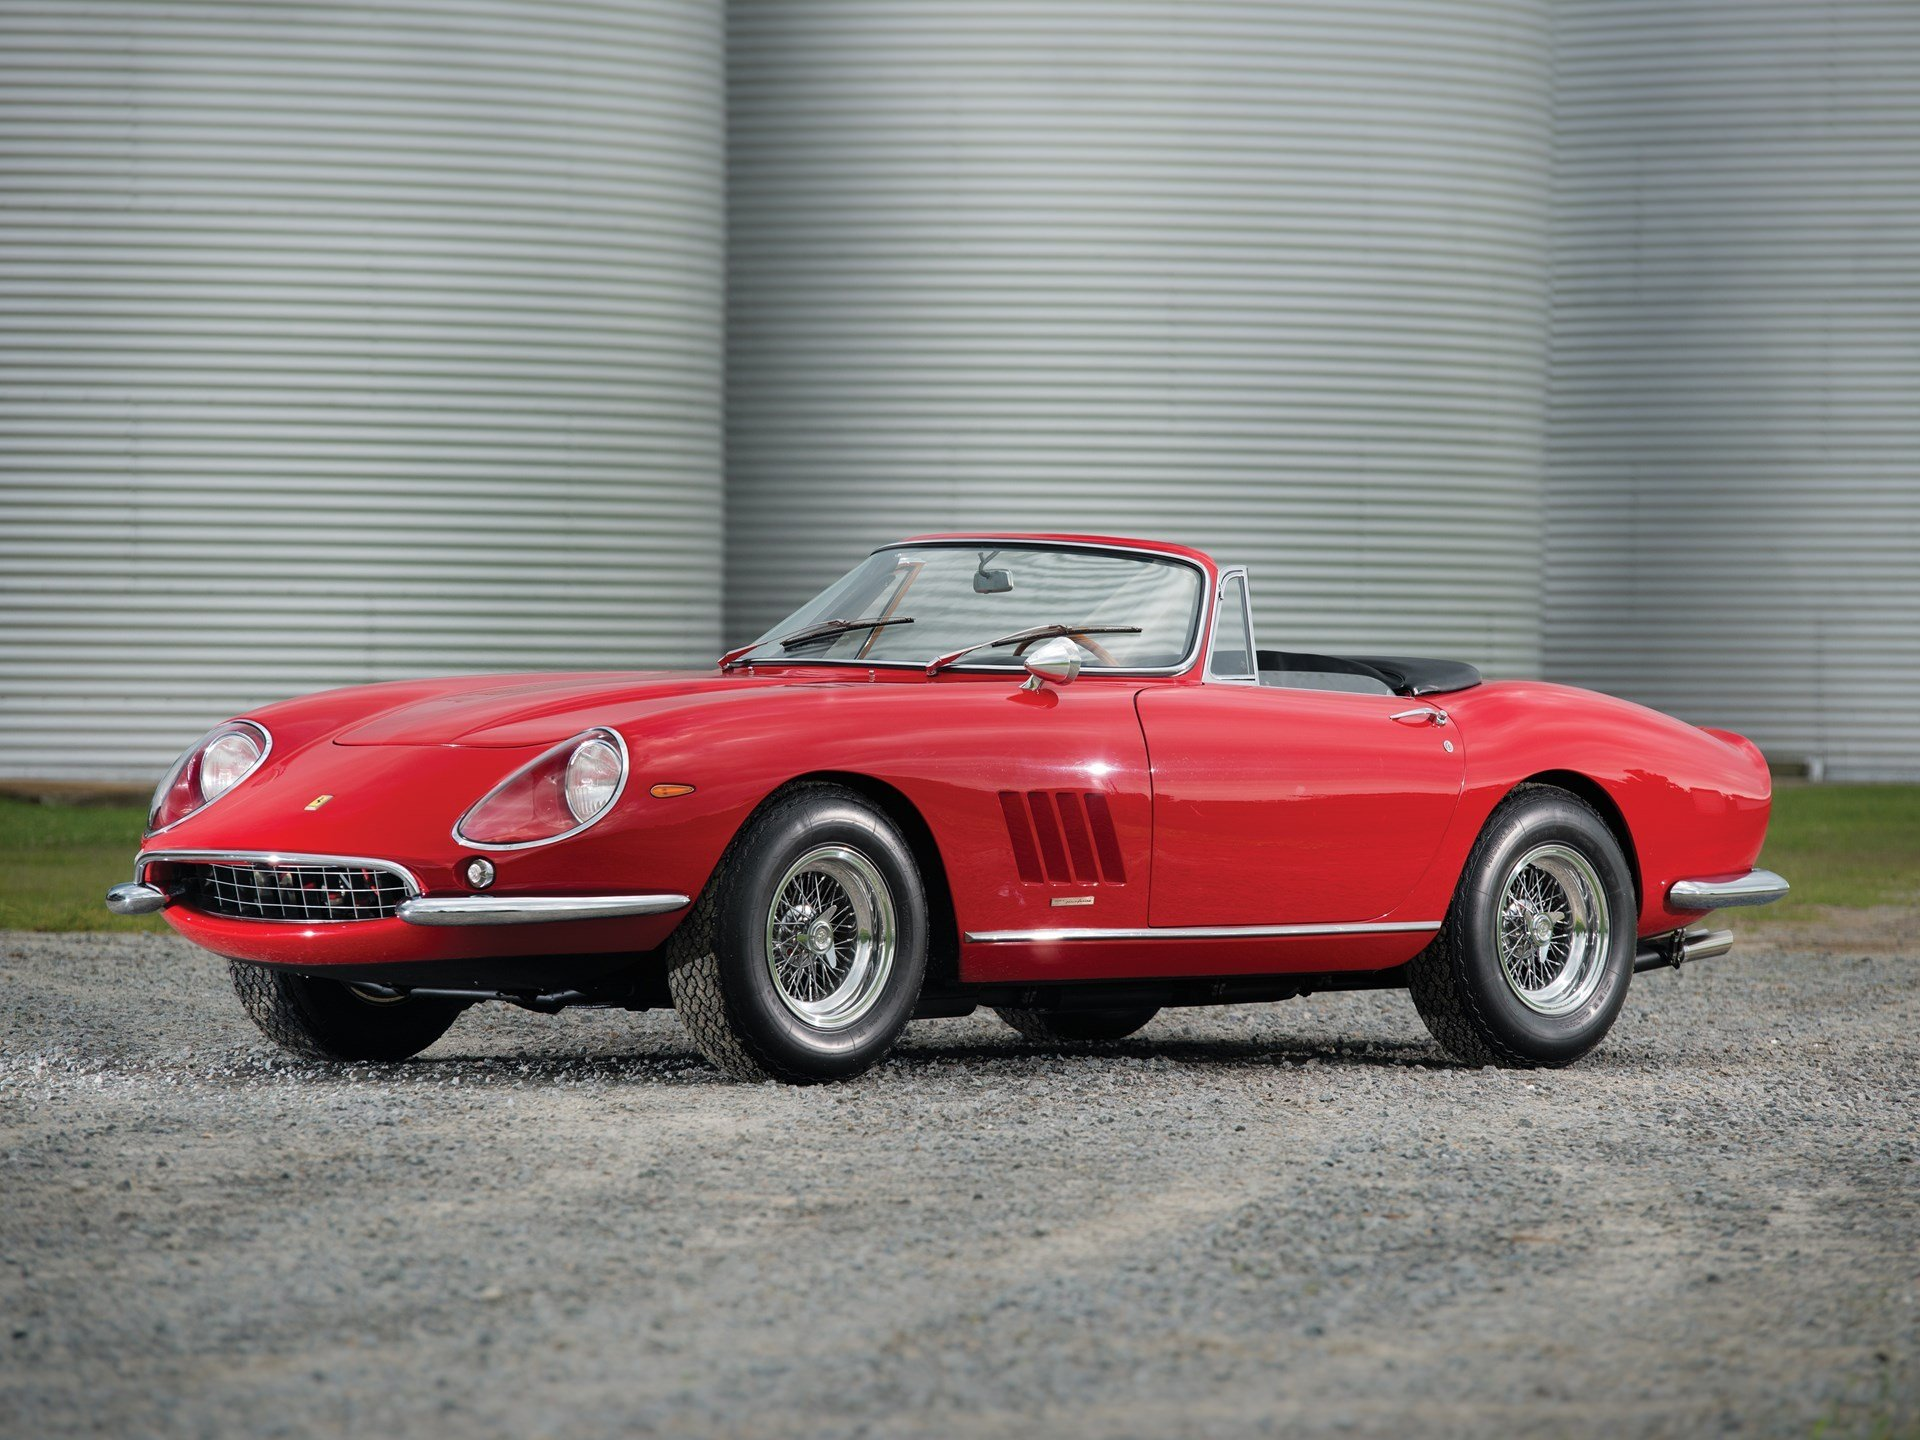 New Enzo Ferrari The Jaguar E Type Is The Most Beautiful Car On This Month